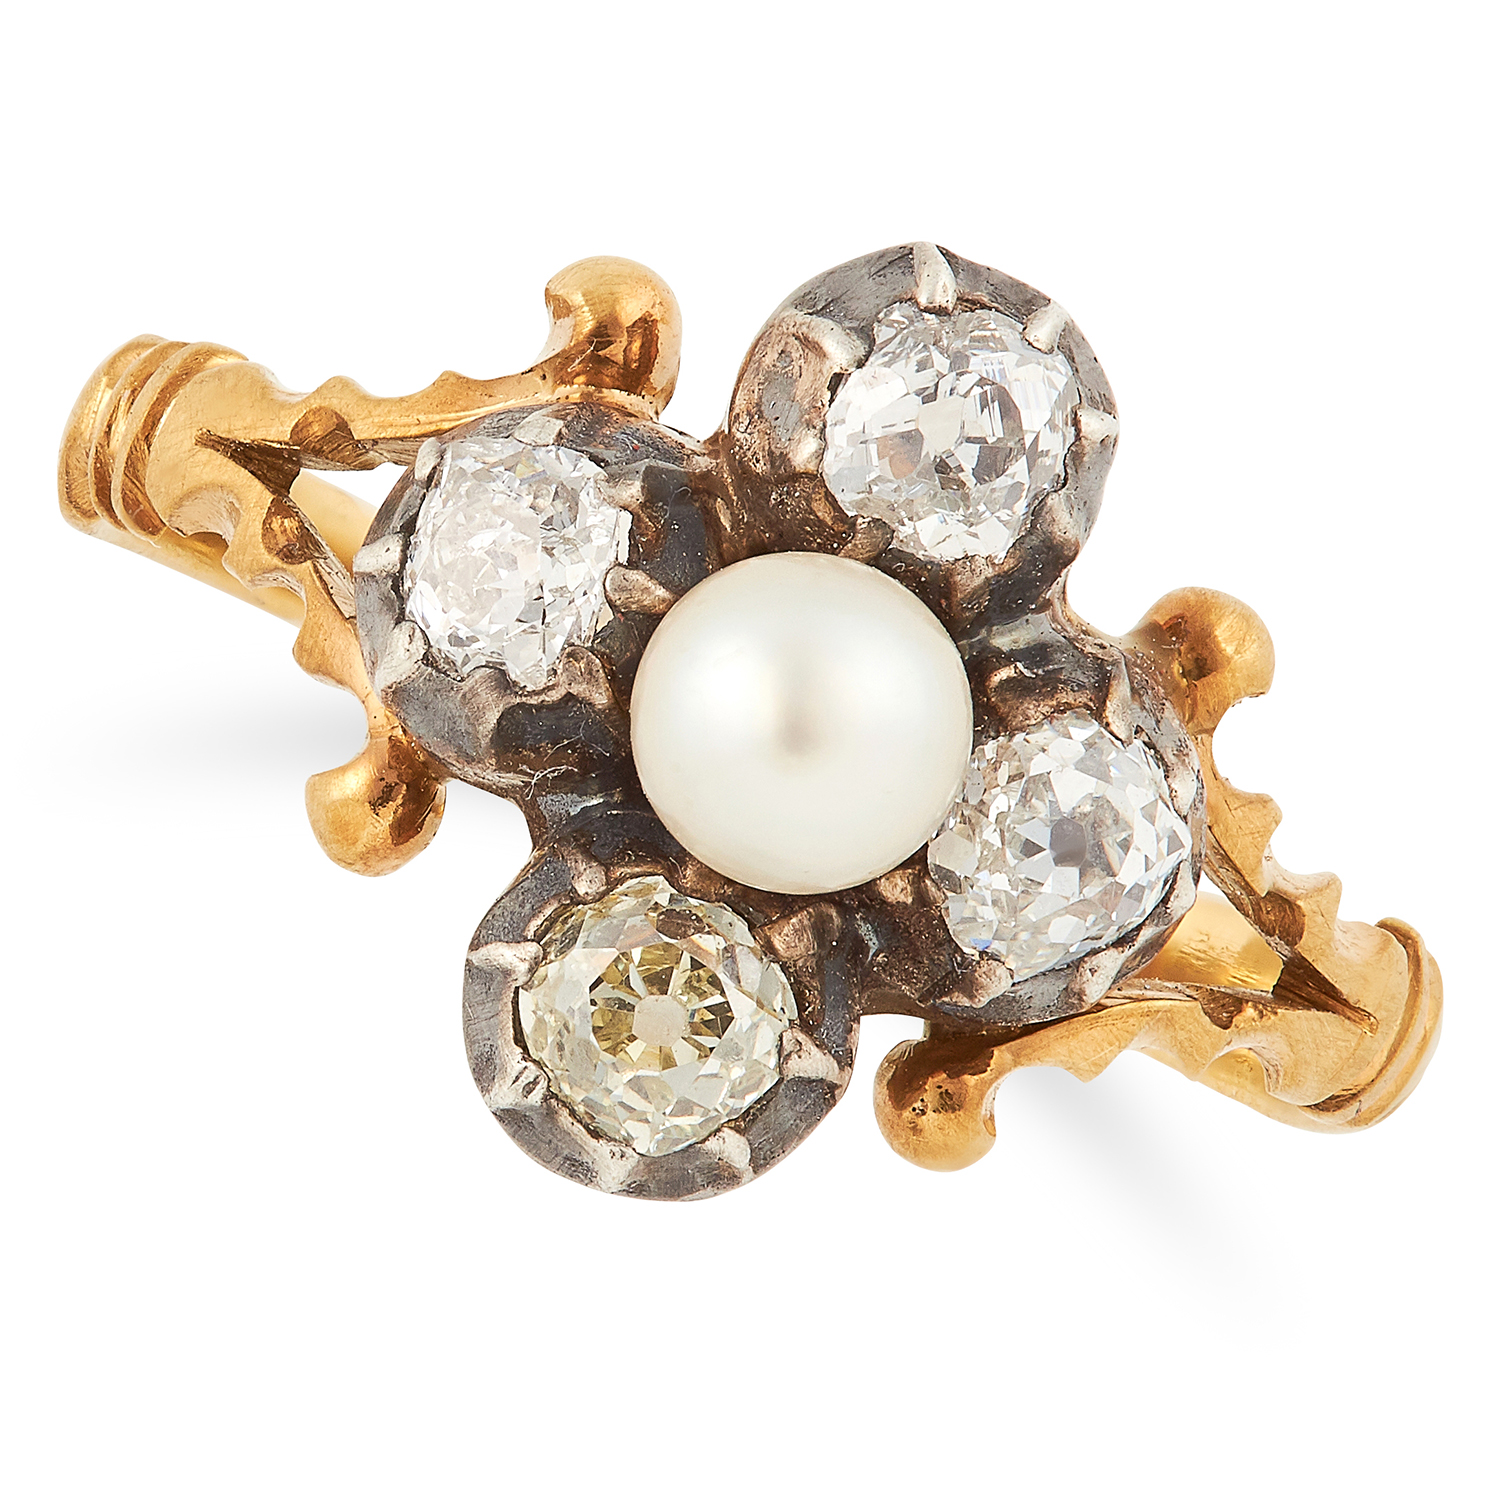 PEARL AND DIAMOND RING comprising of a pearl and old cut diamonds, size O / 7, 3.5g.